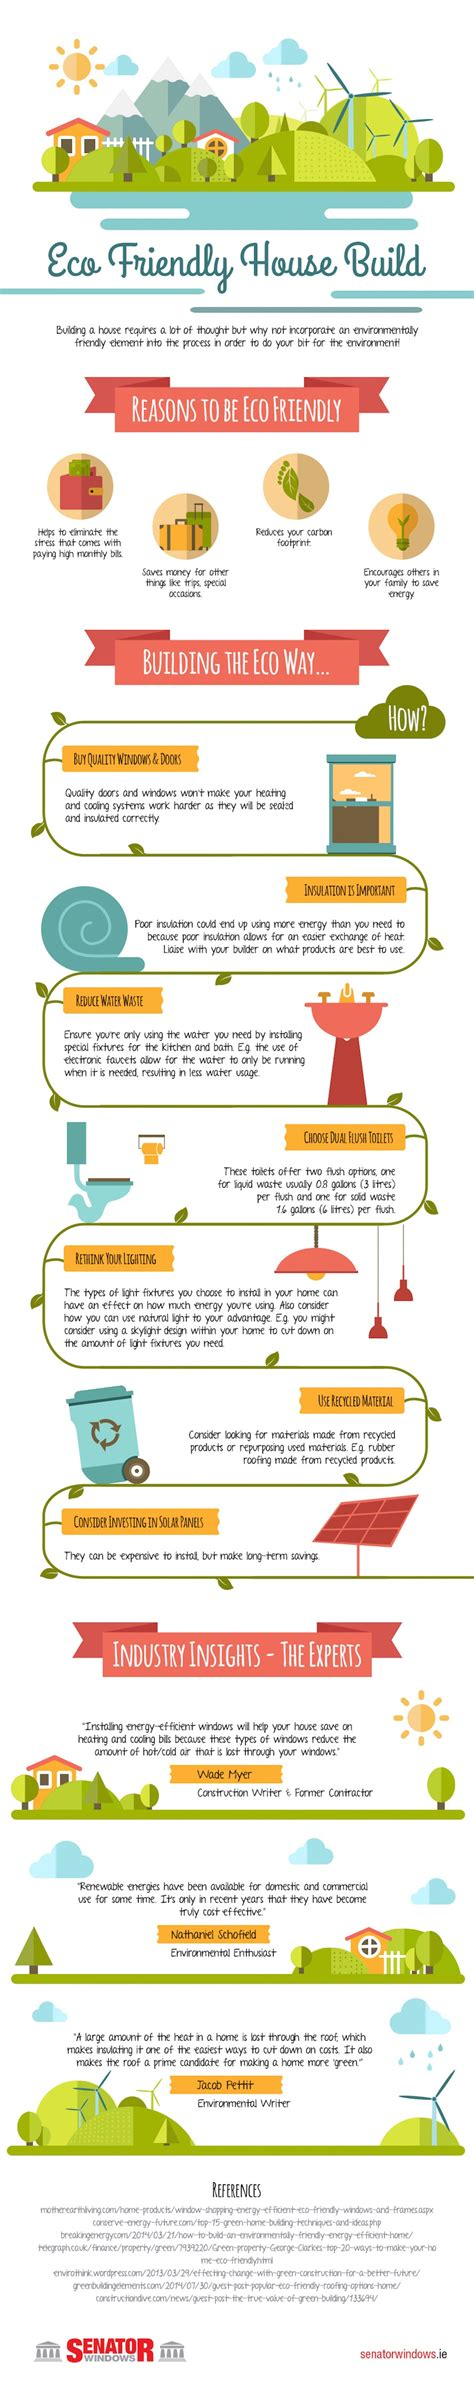 design of environmentally friendly processes infographic helpful tips on making an eco friendly home